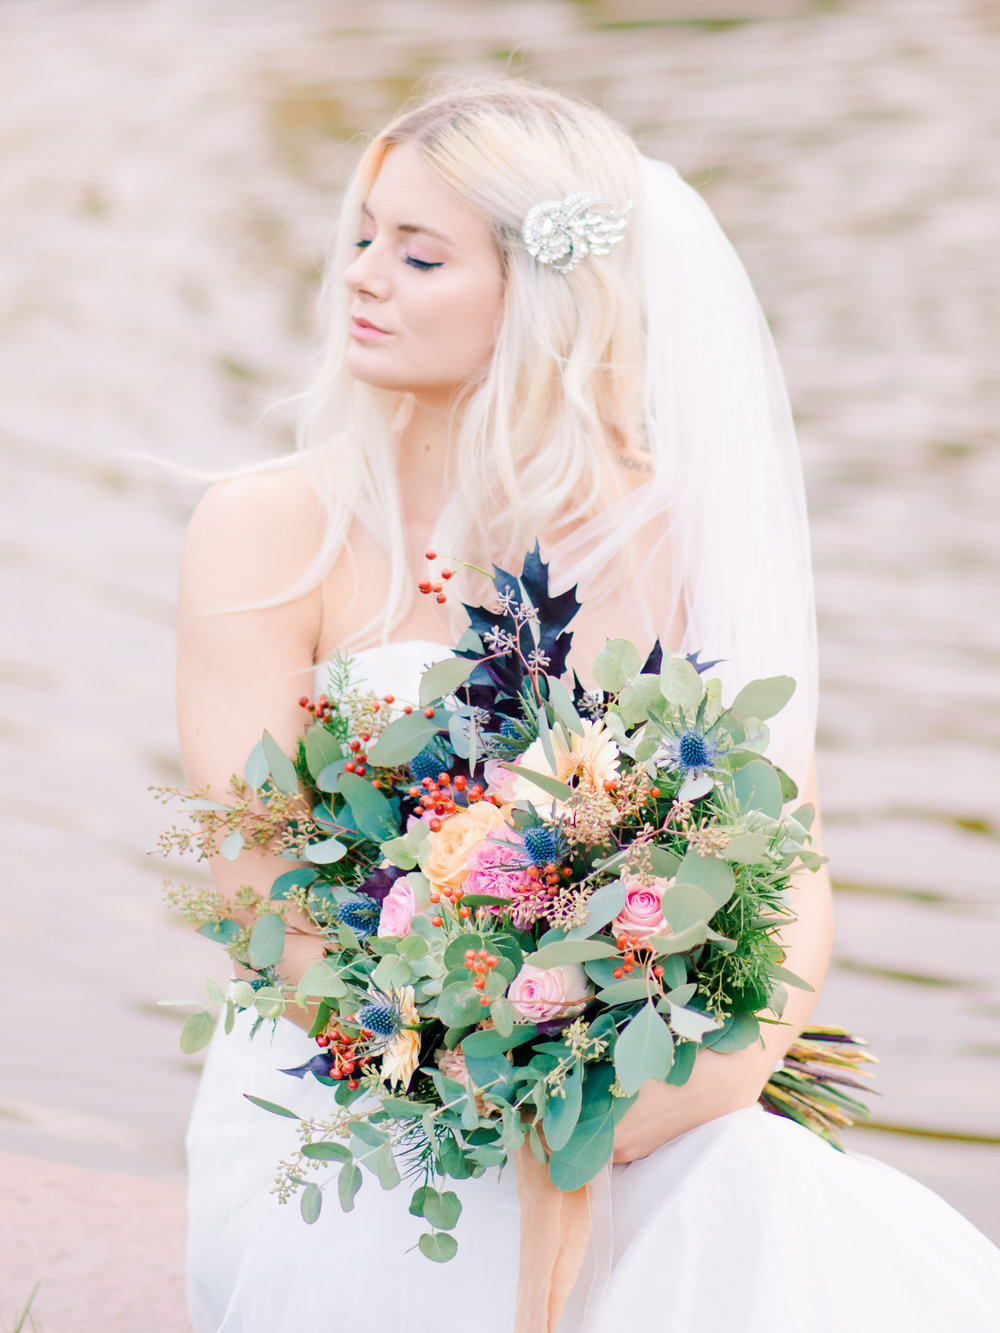 Elegant Organic Fall Swedish Bridal Wedding Styled Shoot - Erika Alvarenga Photography-33.jpg